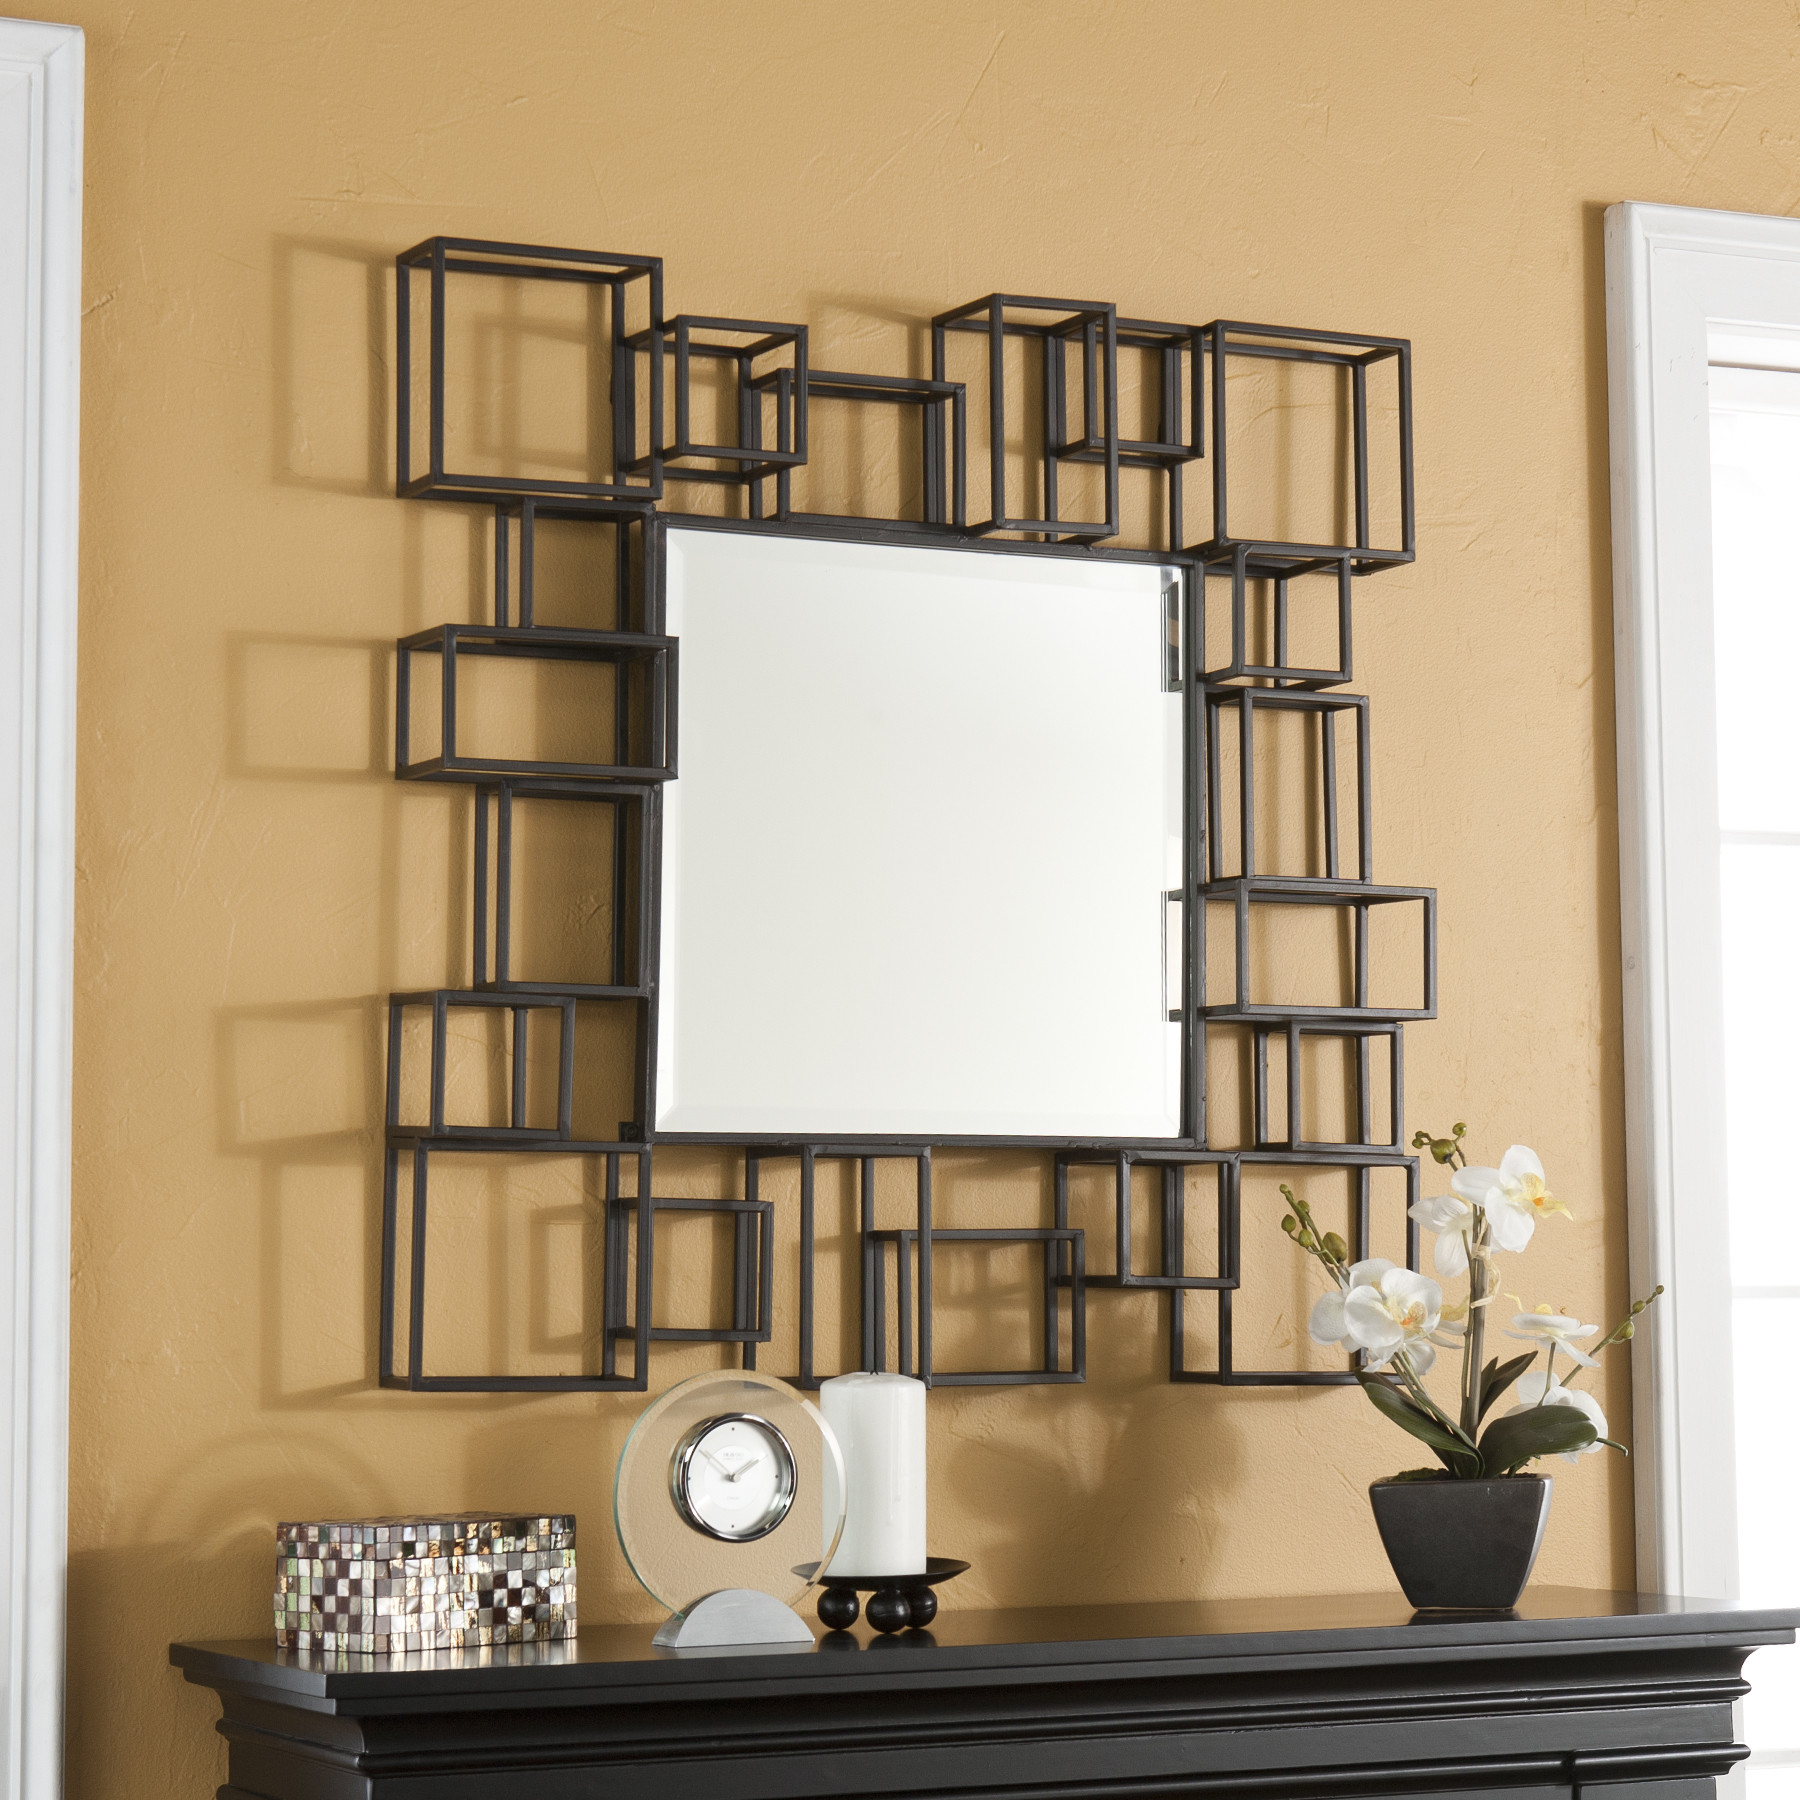 Best And Newest 23 Fancy Decorative Mirror Designs With Regard To Fancy Wall Mirrors (View 7 of 20)